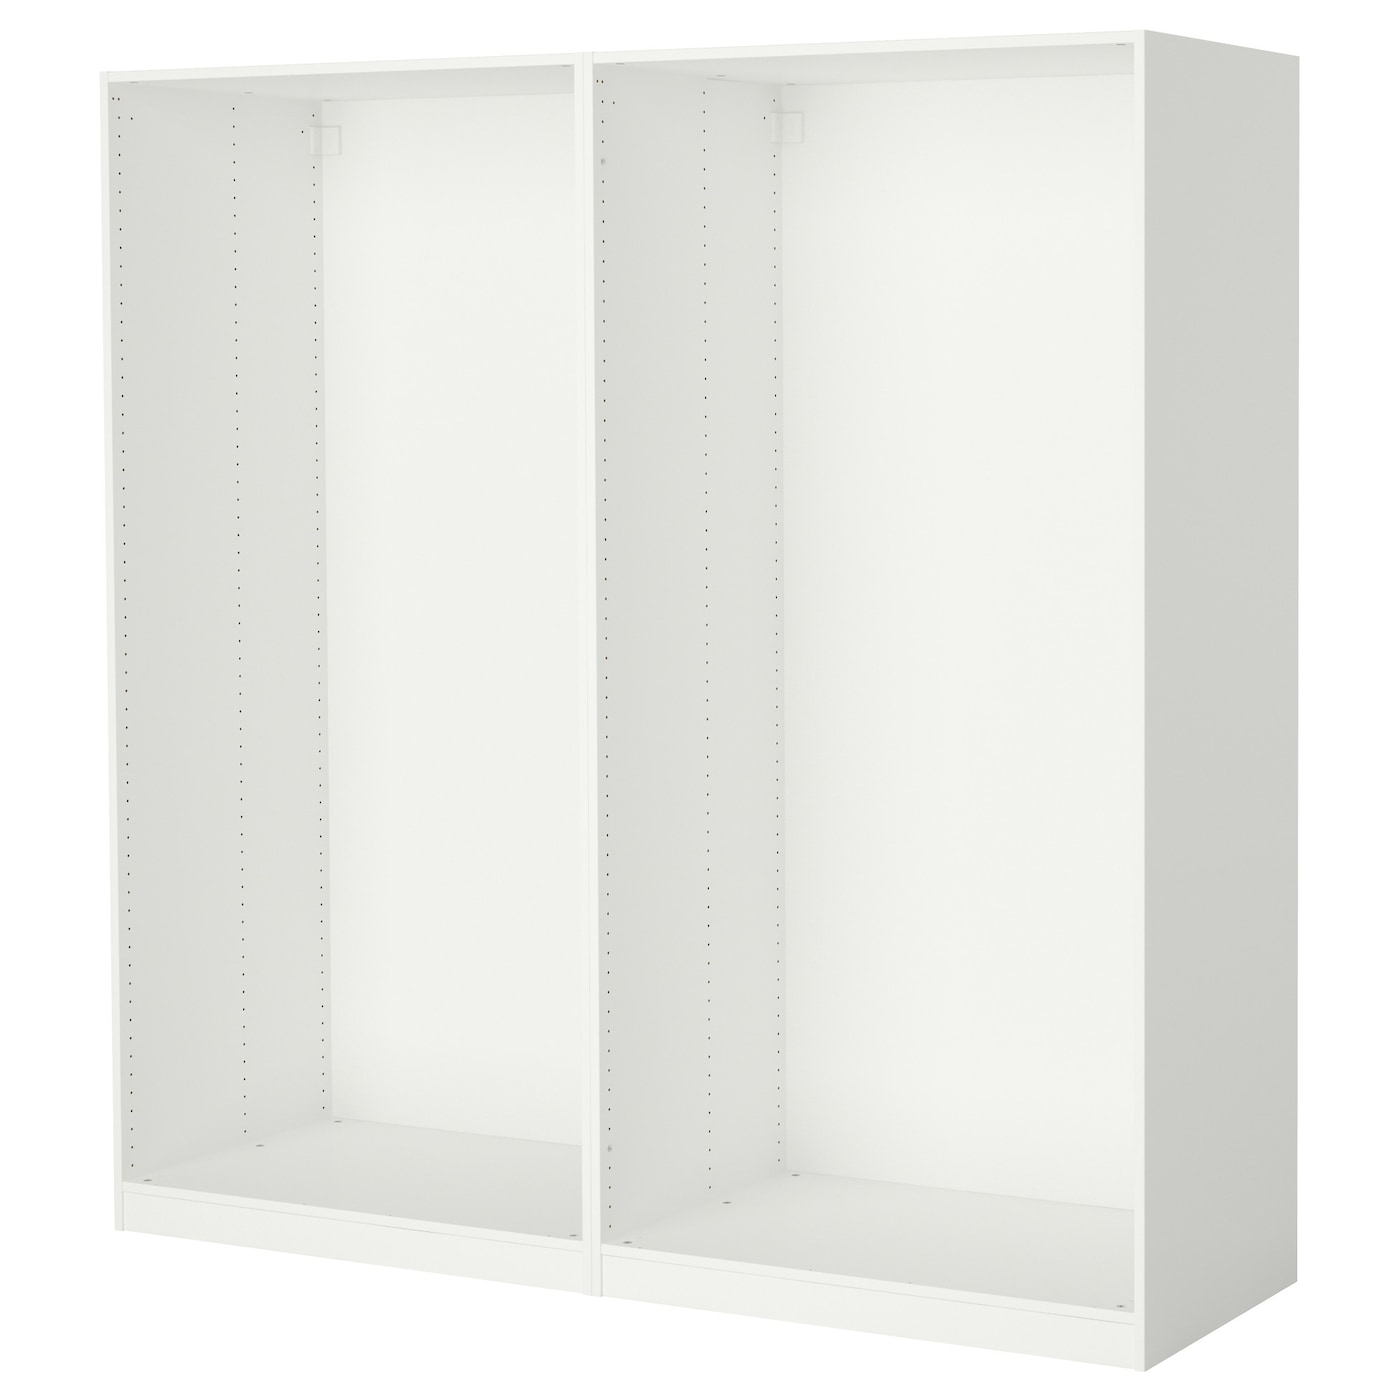 pax 2 caissons armoire blanc 200 x 58 x 201 cm ikea. Black Bedroom Furniture Sets. Home Design Ideas